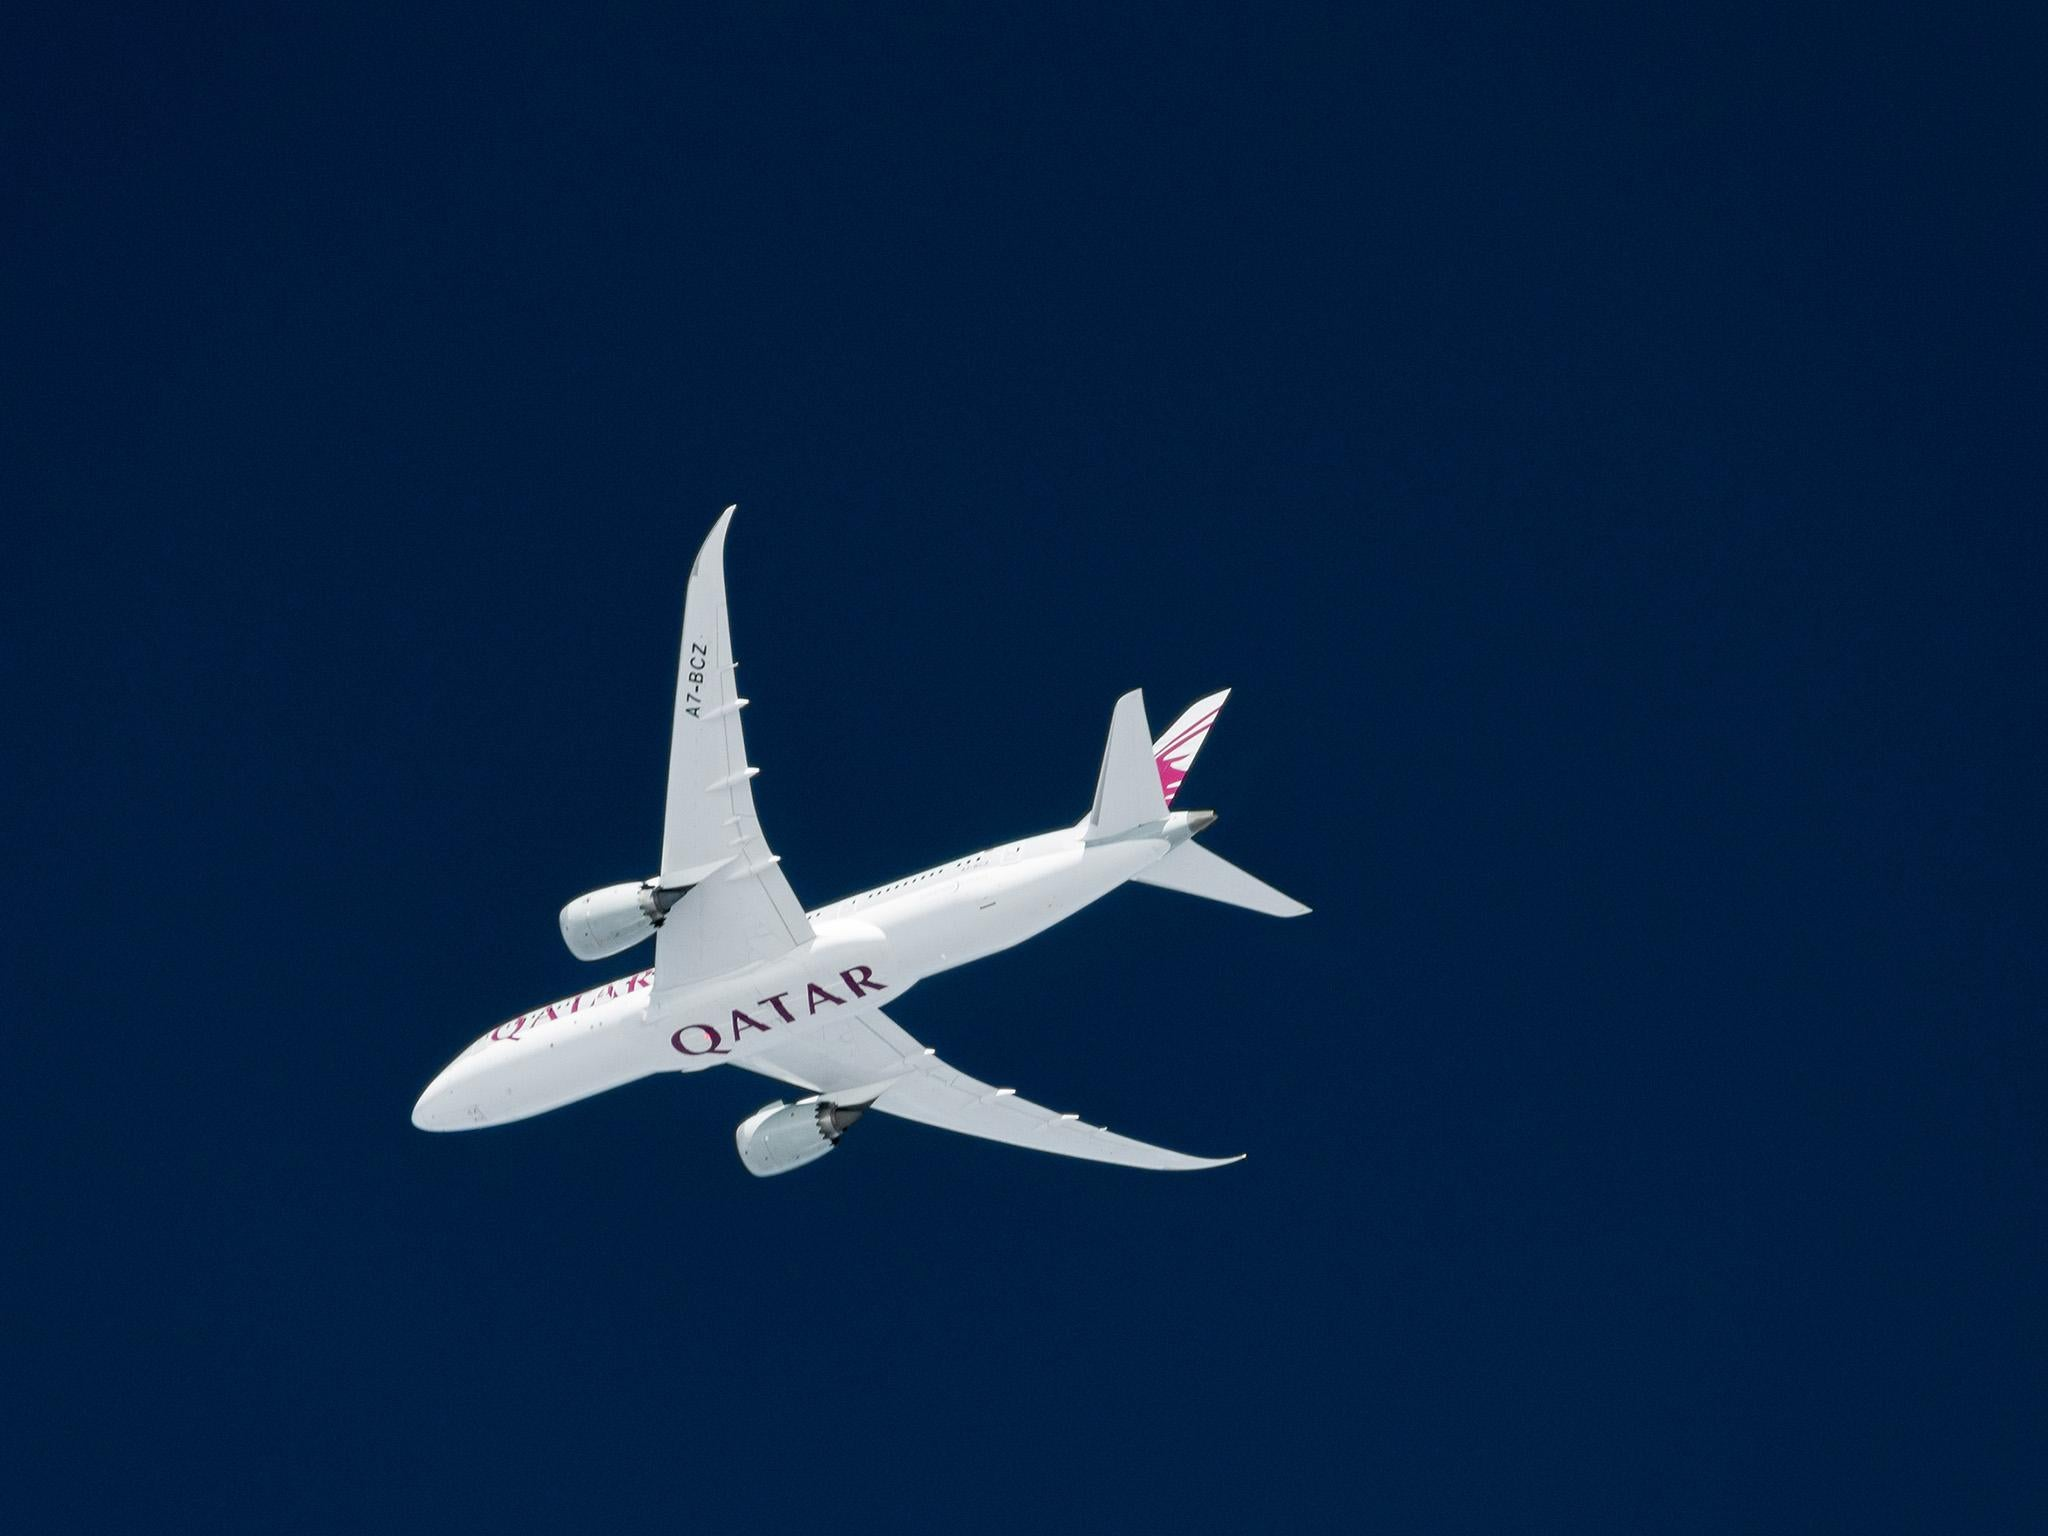 1. Qatar Airways